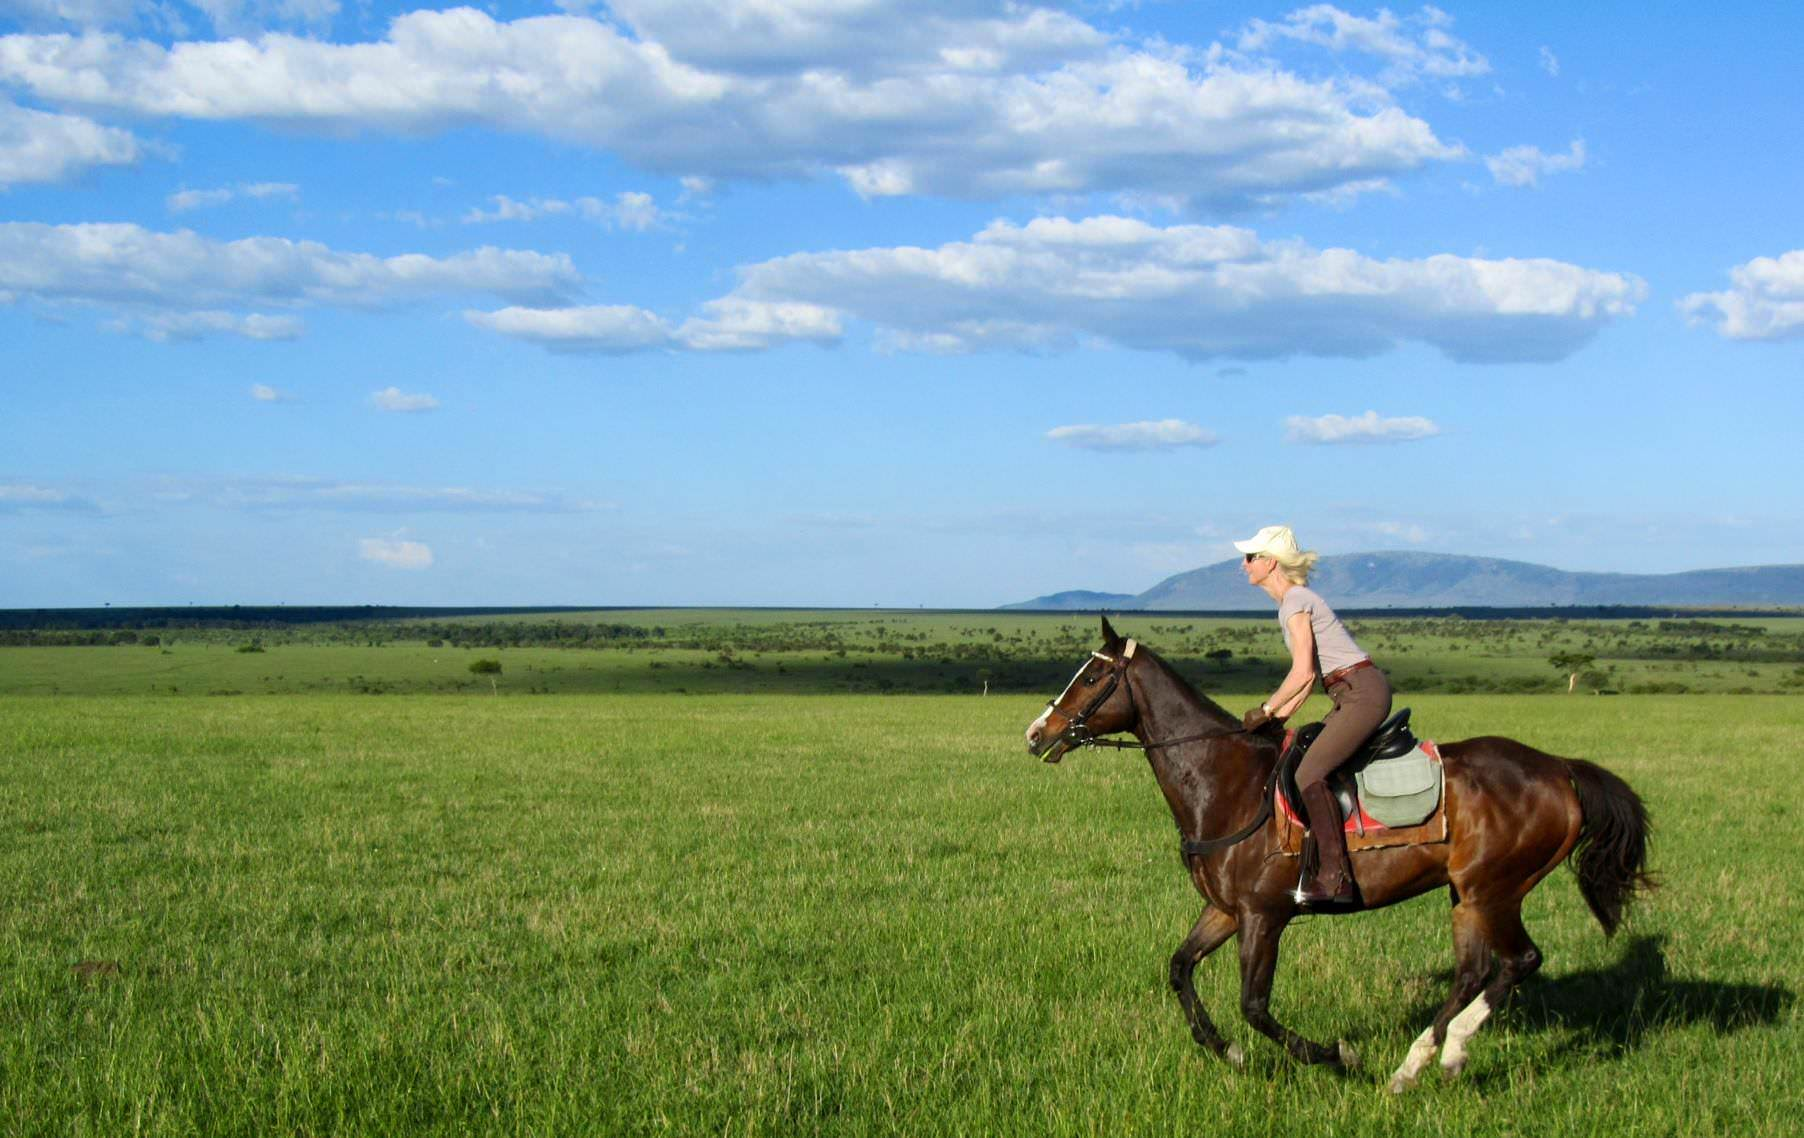 The horses are fit and raring to go, ready for upcoming safaris.